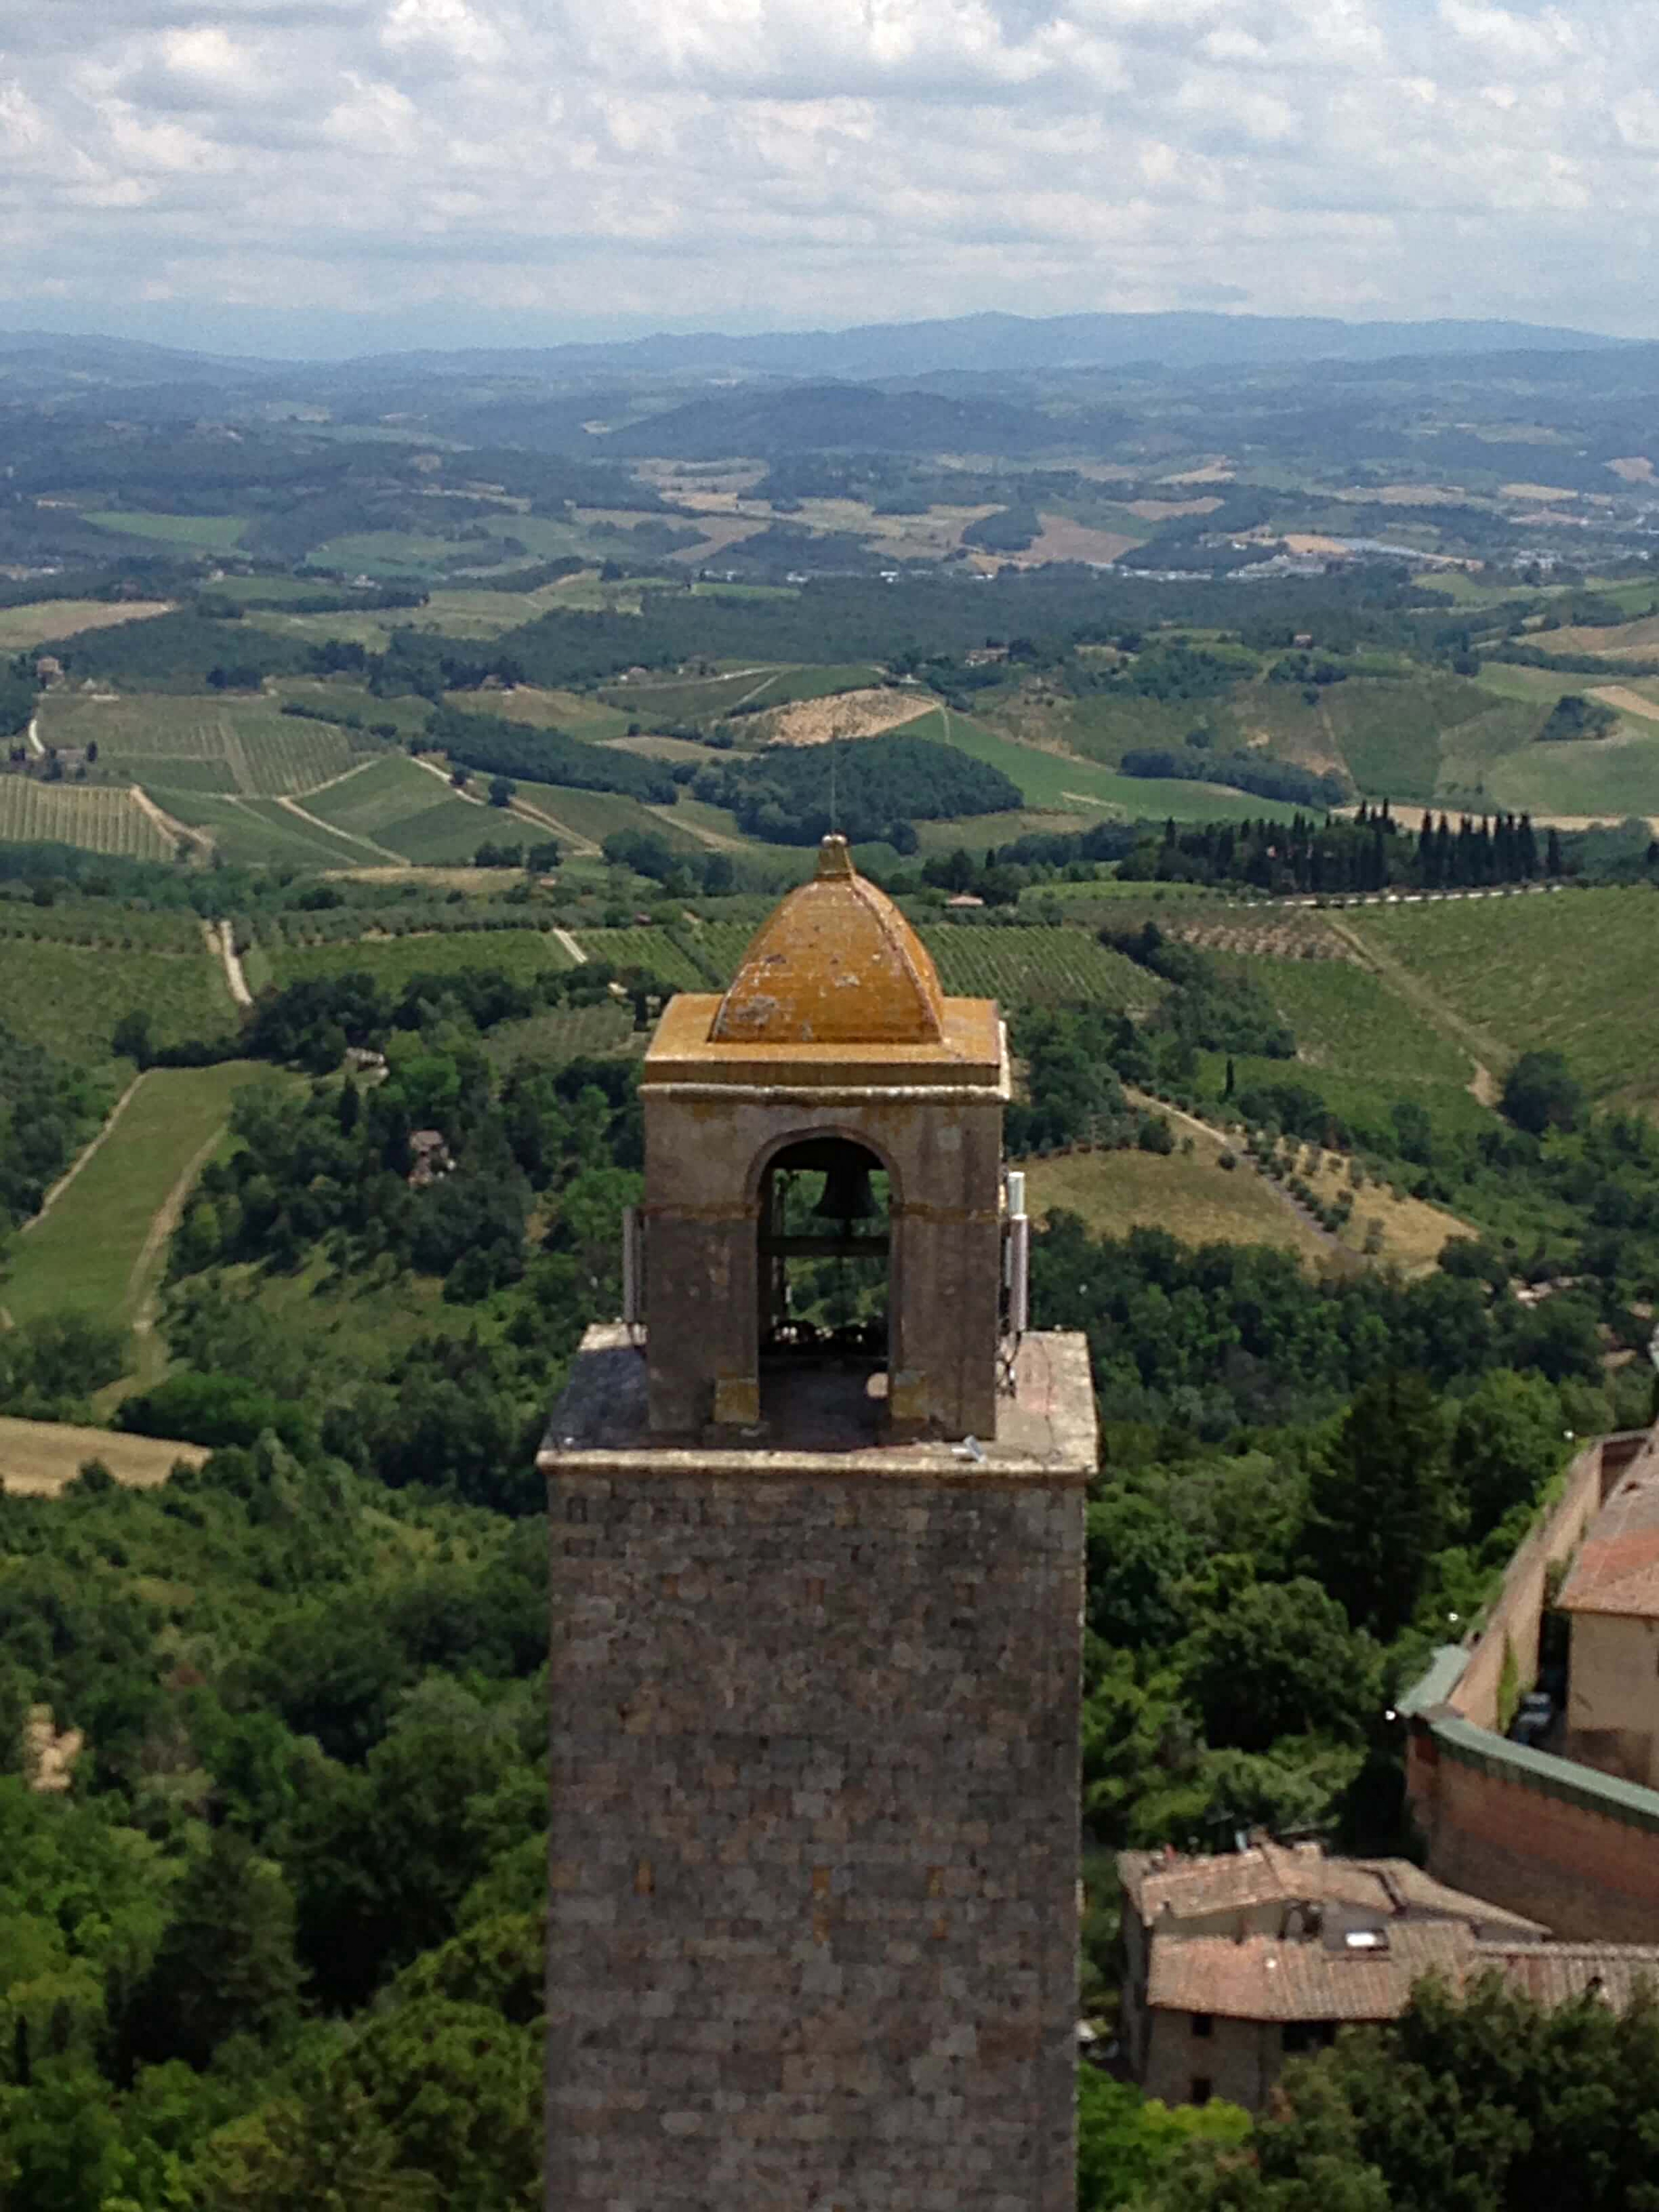 Countryside View from Torre Grossa